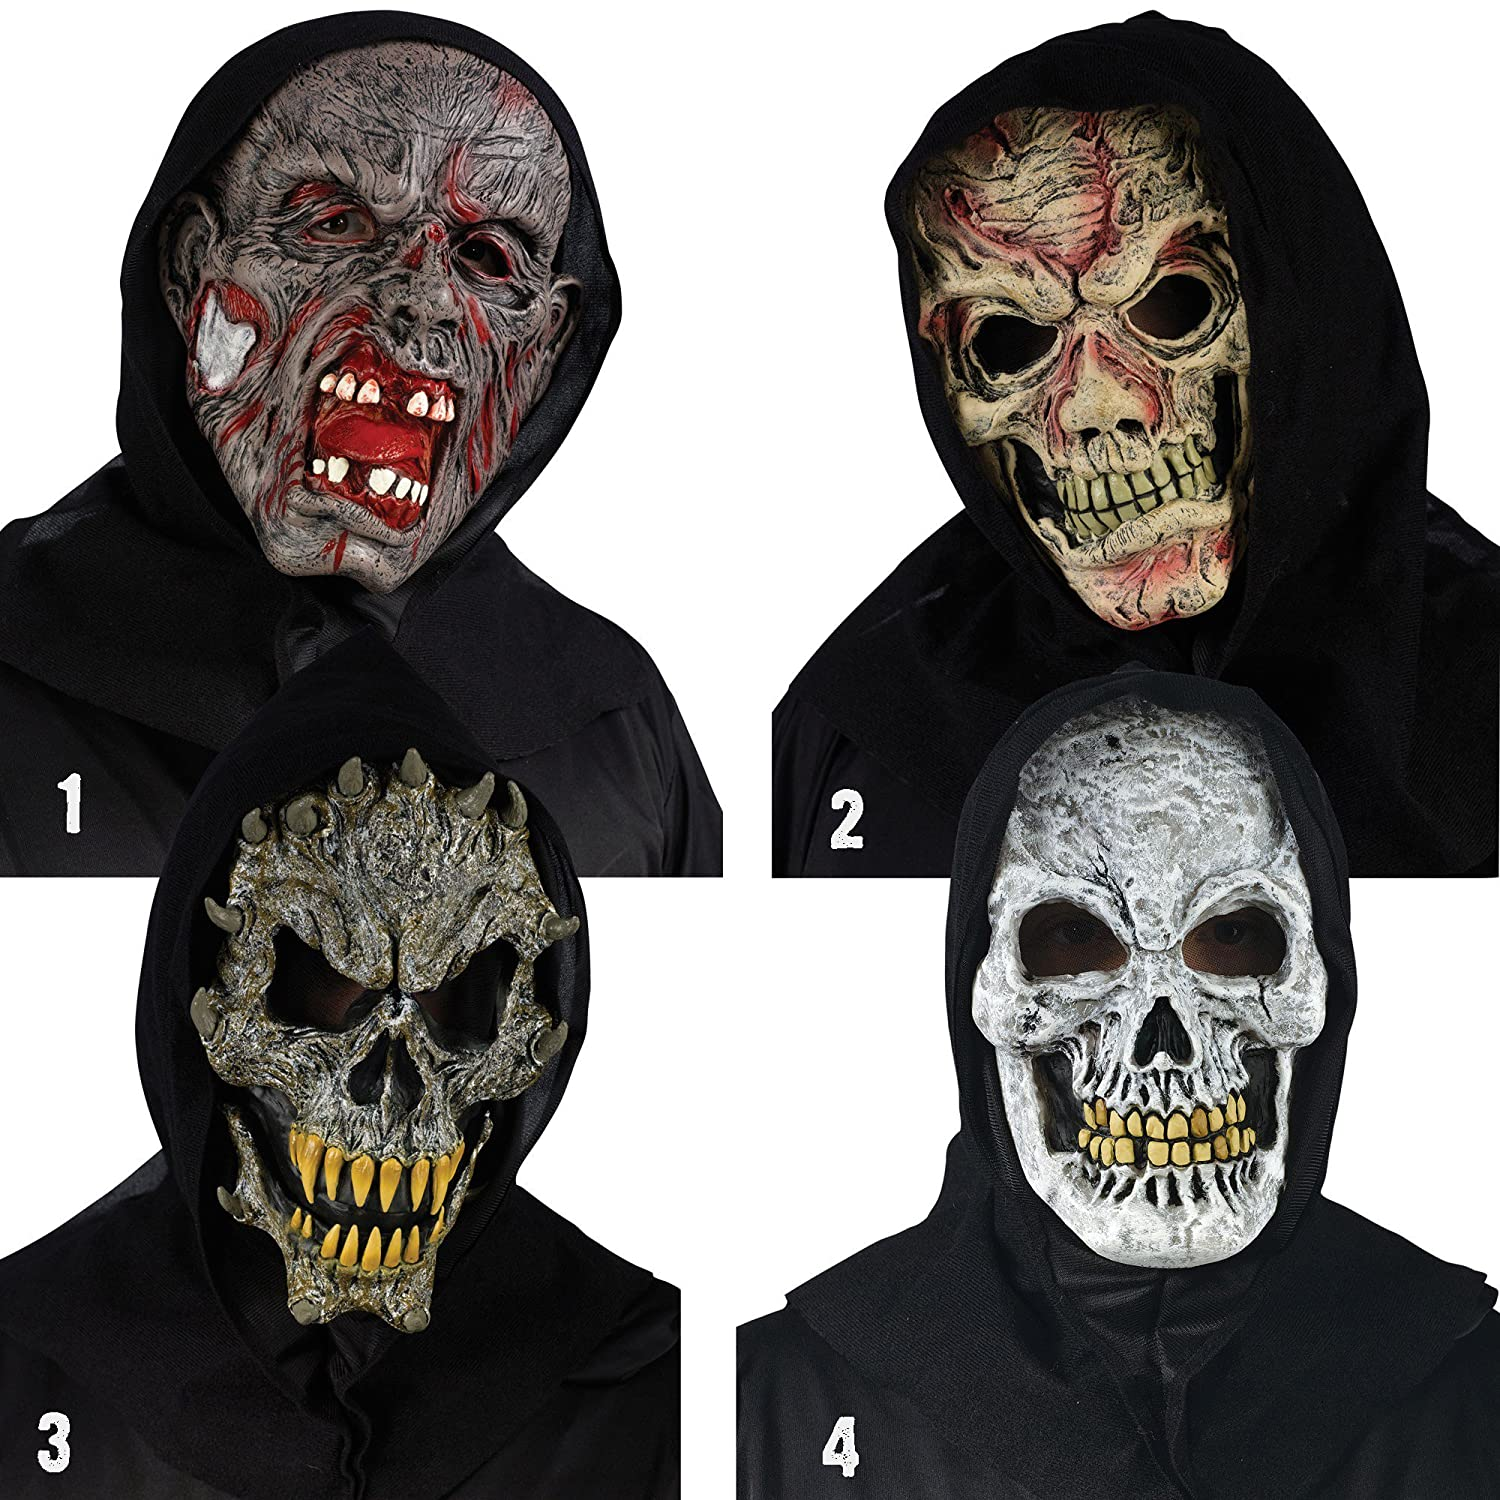 Fearsome Faces Hooded Bloody Creature Mask OSFM NWT